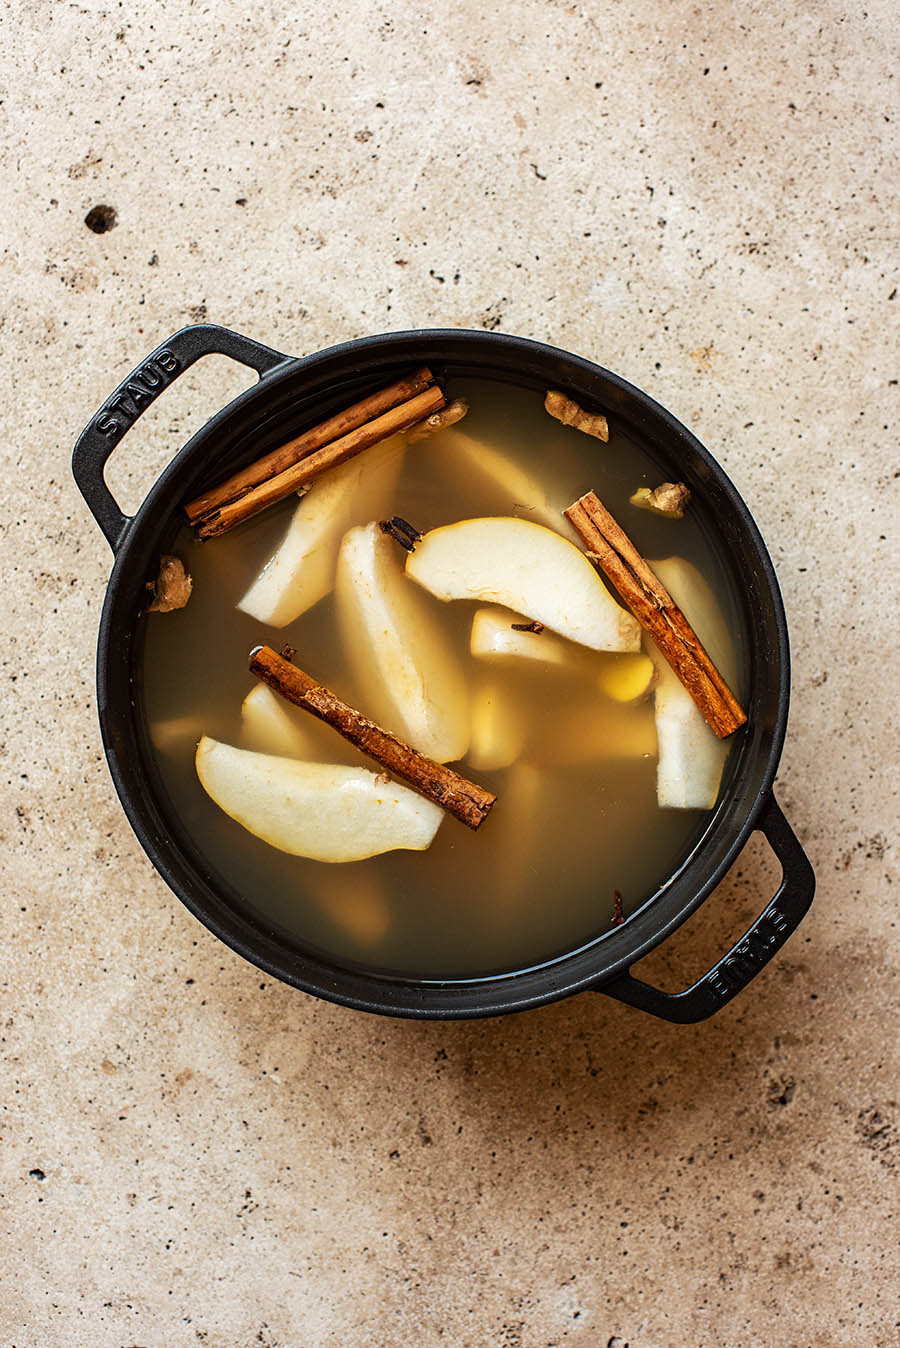 Cider before cooking.